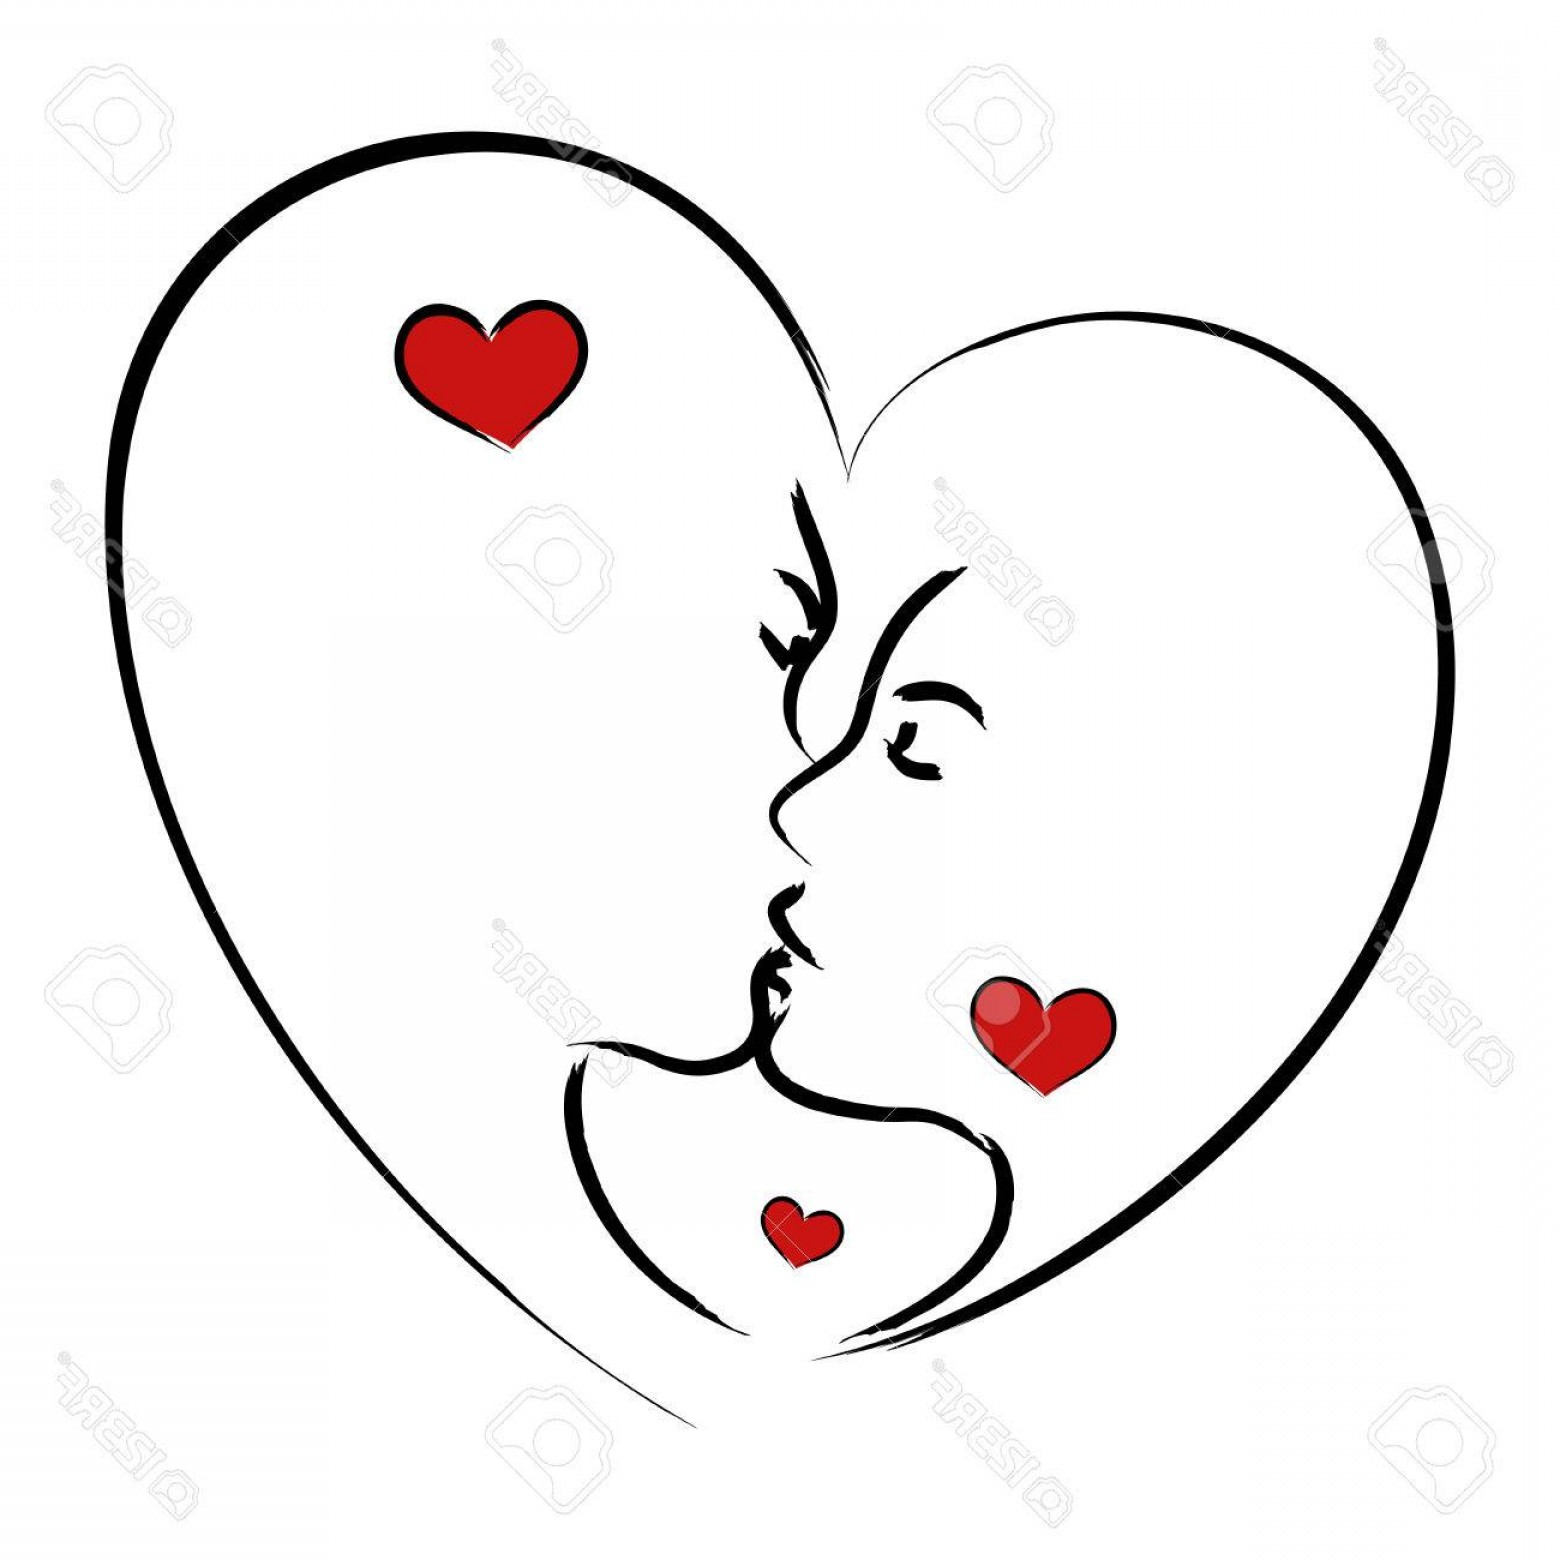 Kiss Clip Art Vector: Photostock Vector Line Art Illustration Of A Man And Woman Kissing In Heart Shape Symbol